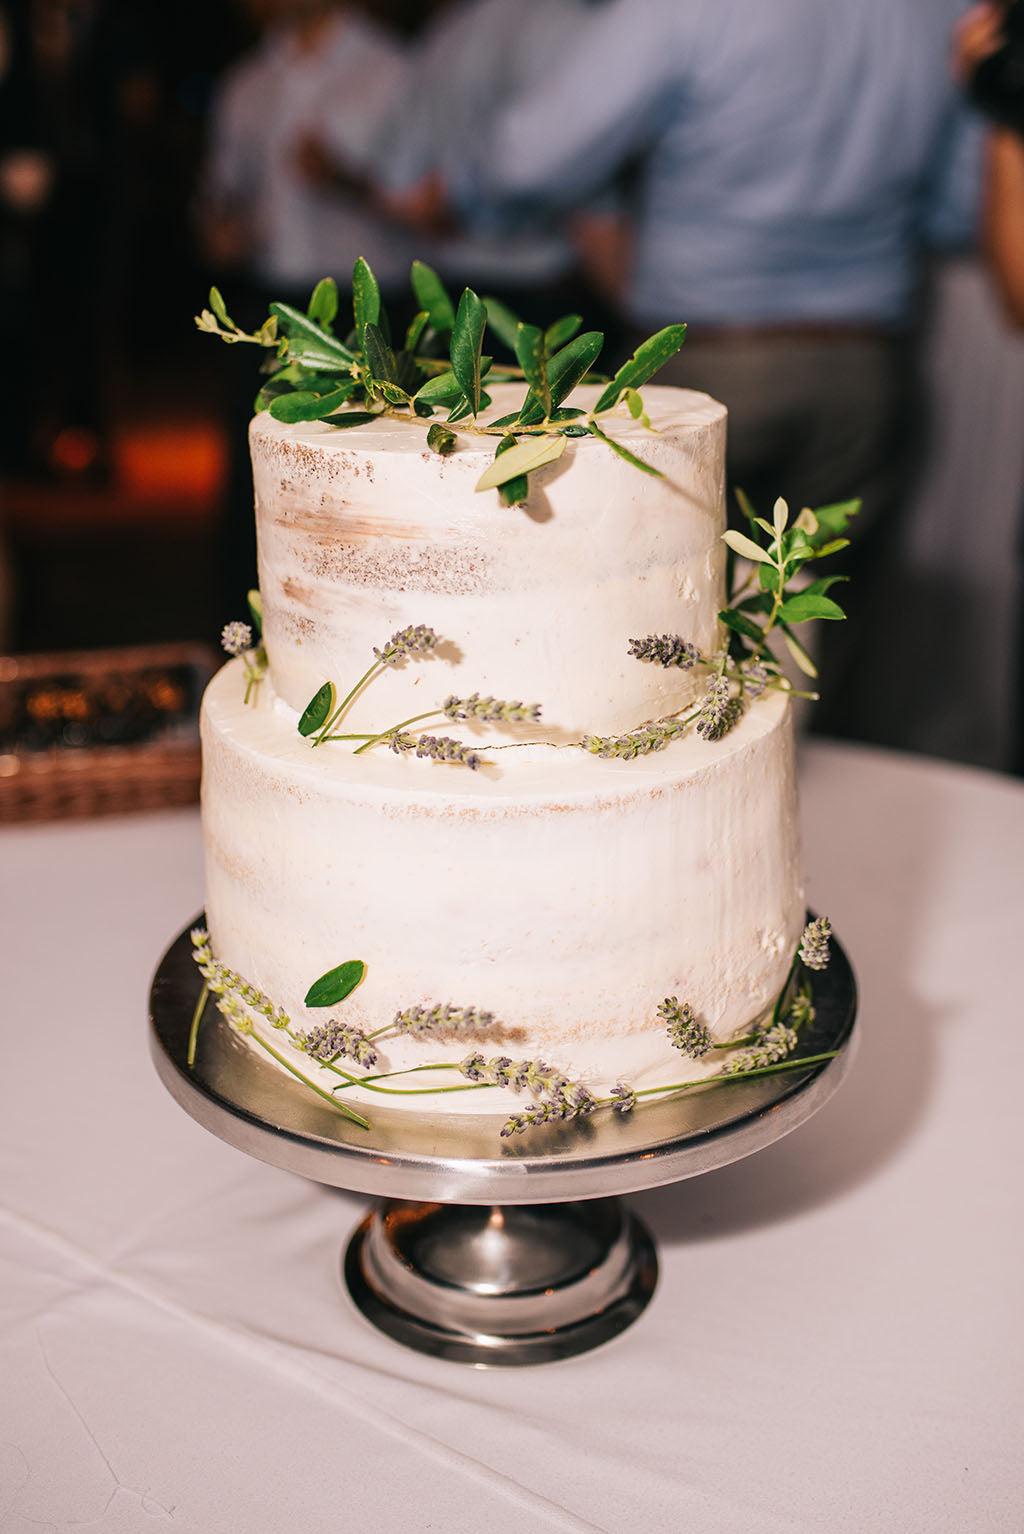 naked cake with olive branch leaves